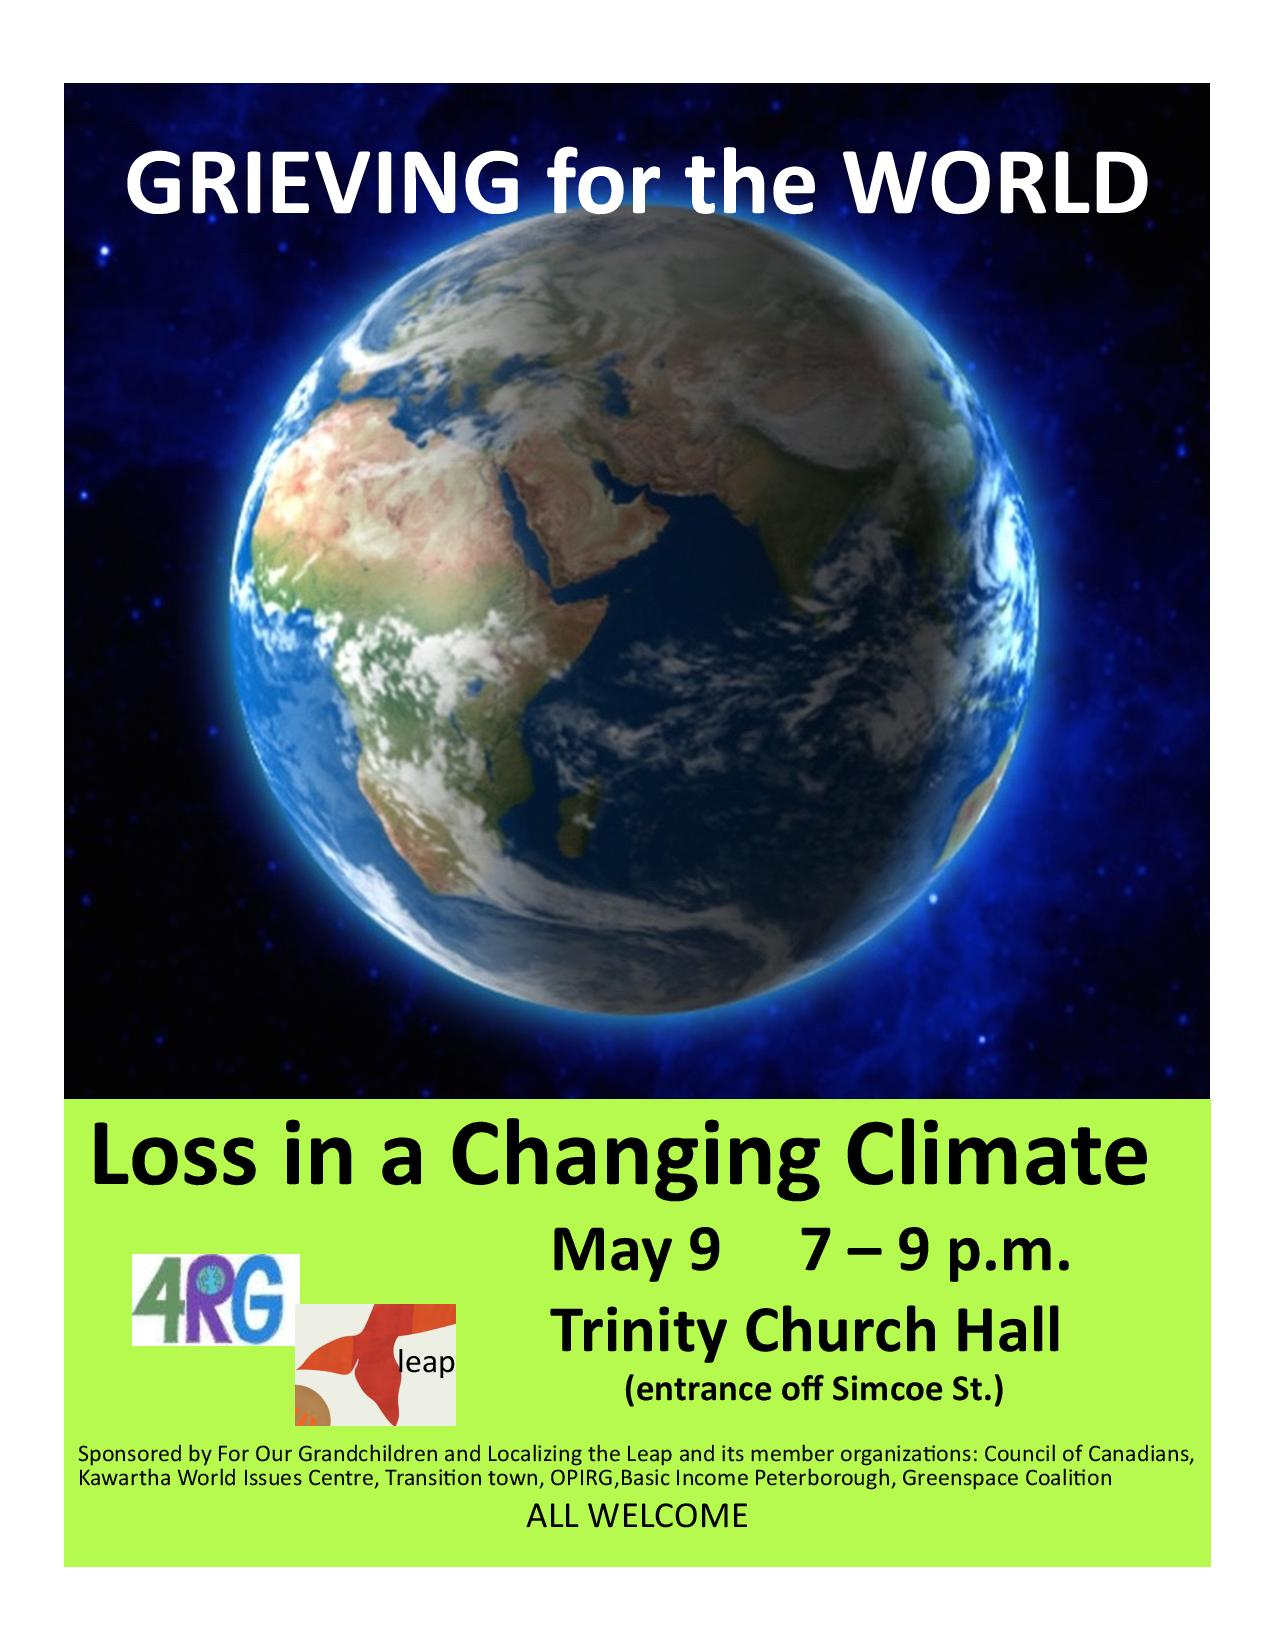 Grieving the World Community Event